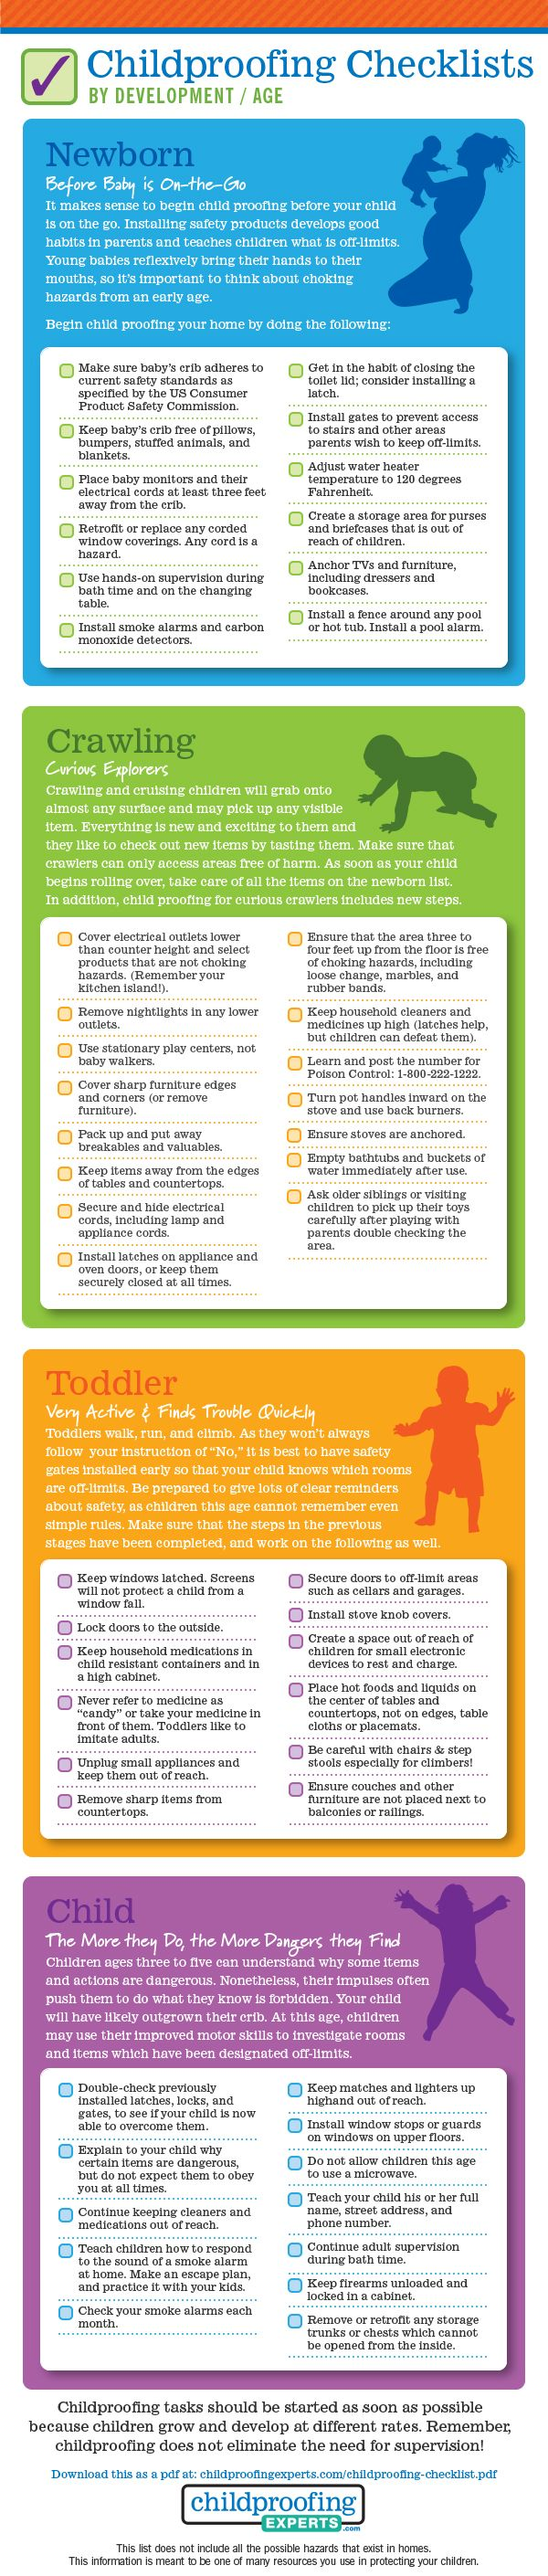 Child Proofing checklist by Age / Development | Baby Safety ...